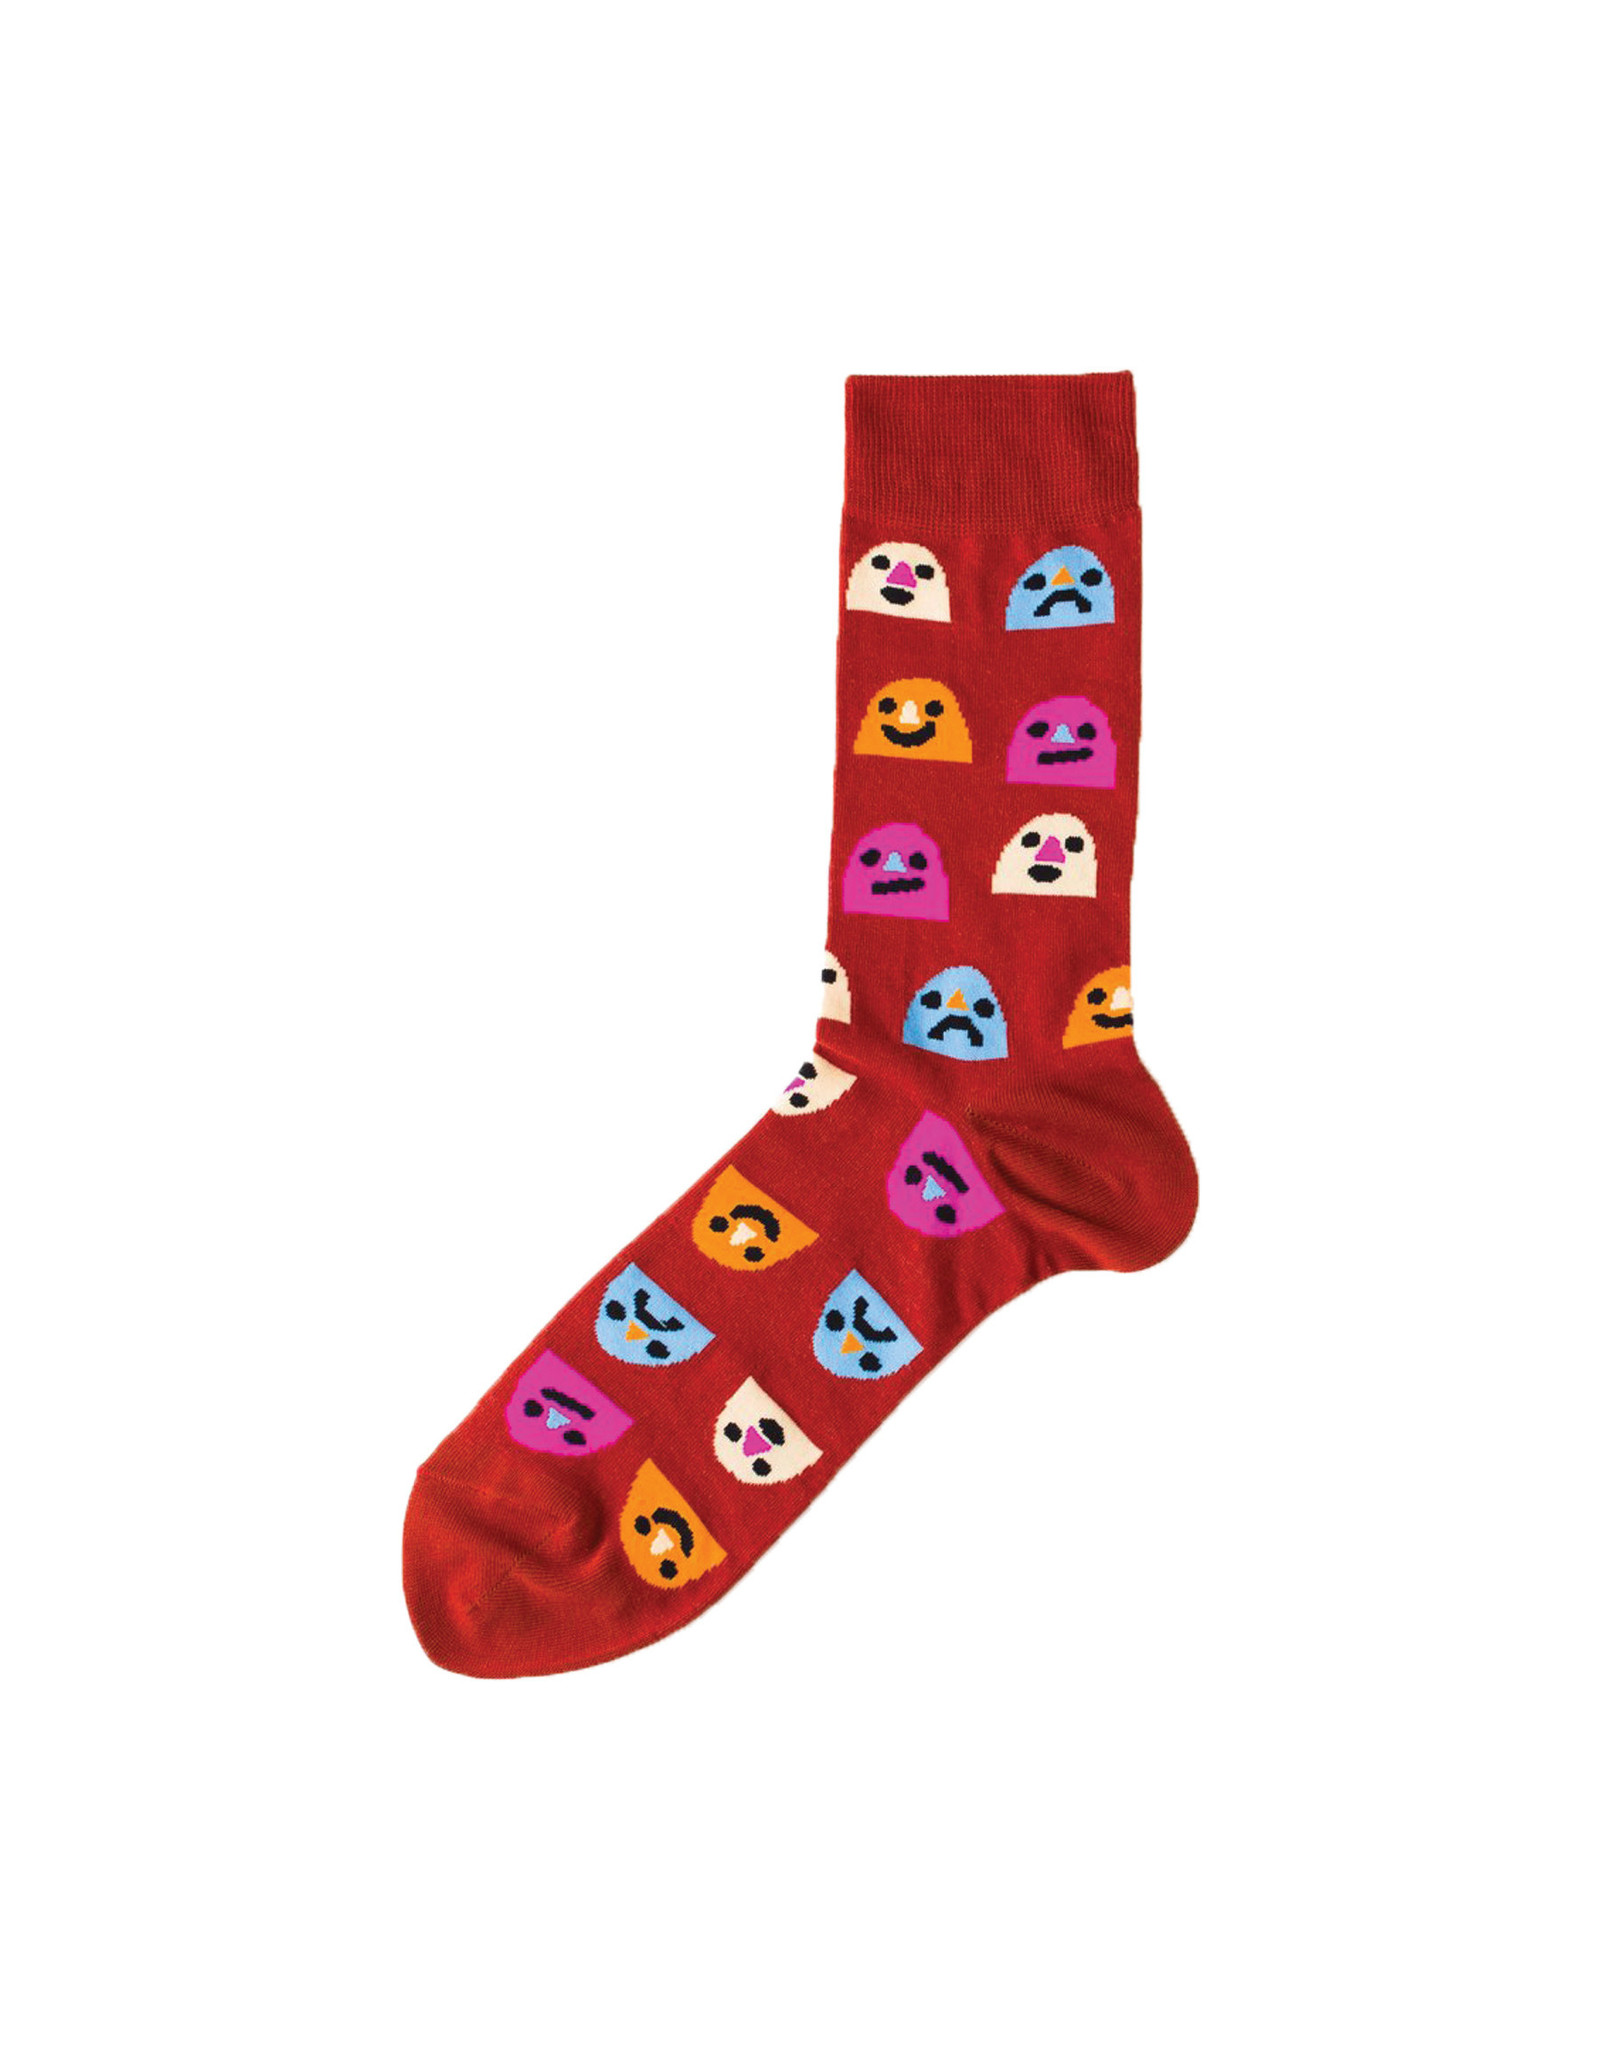 Yellow Owl Red Mixed Emotions Socks, M-L